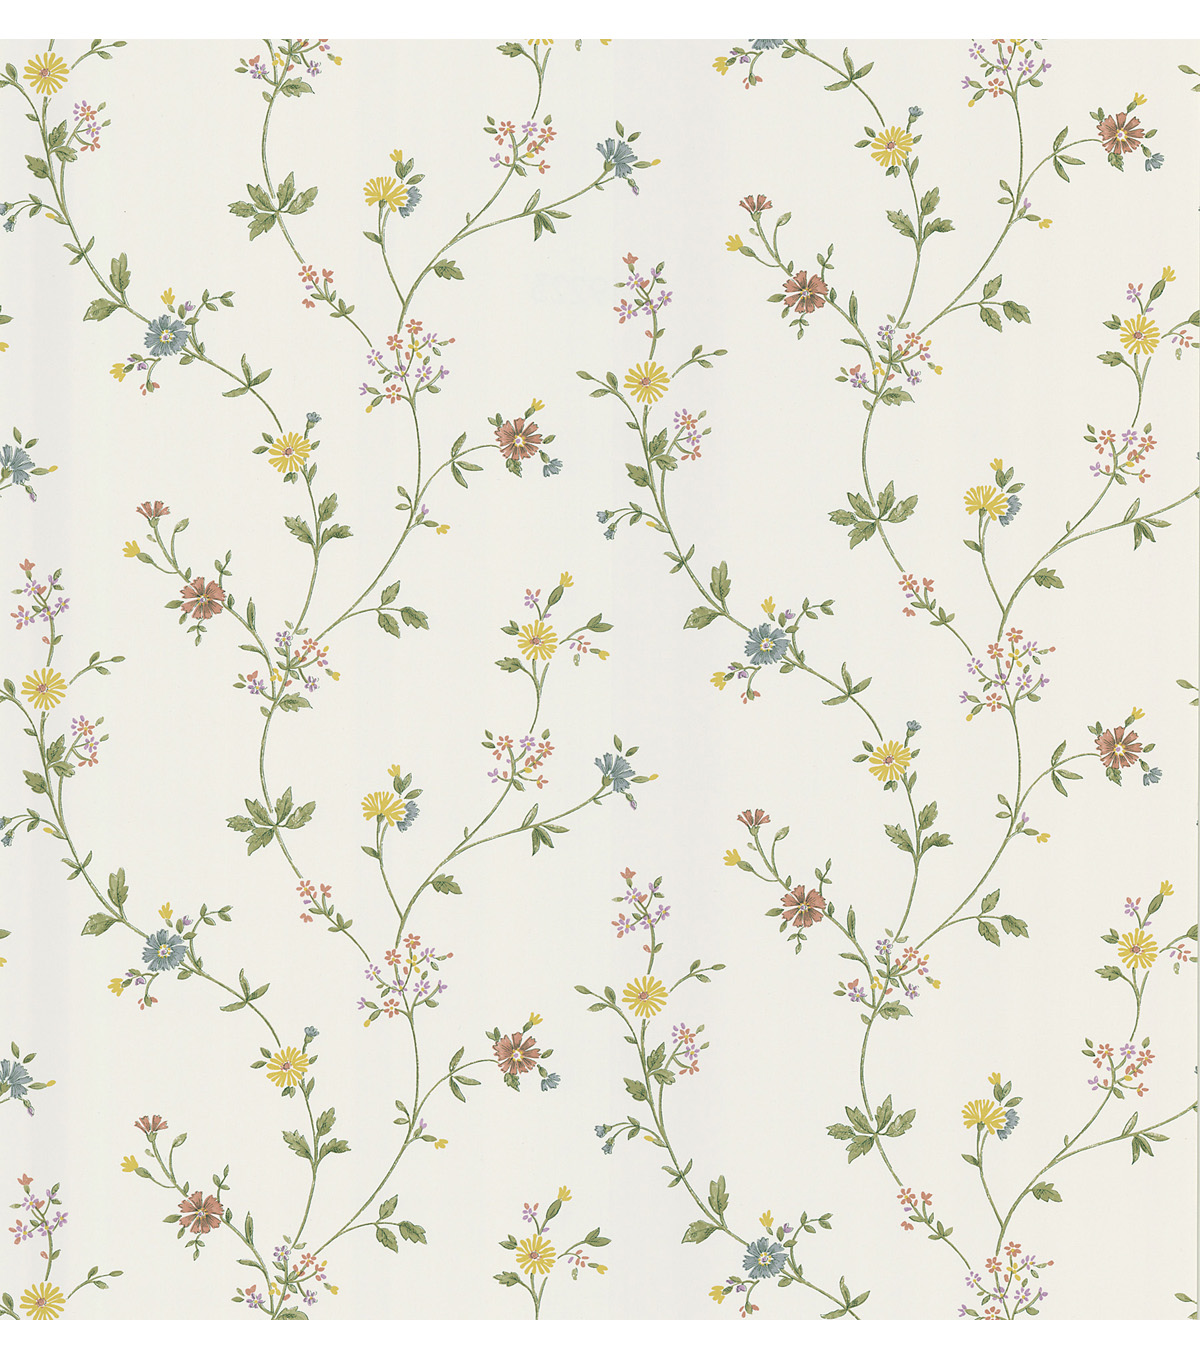 Daisy White Floral Trail Wallpaper